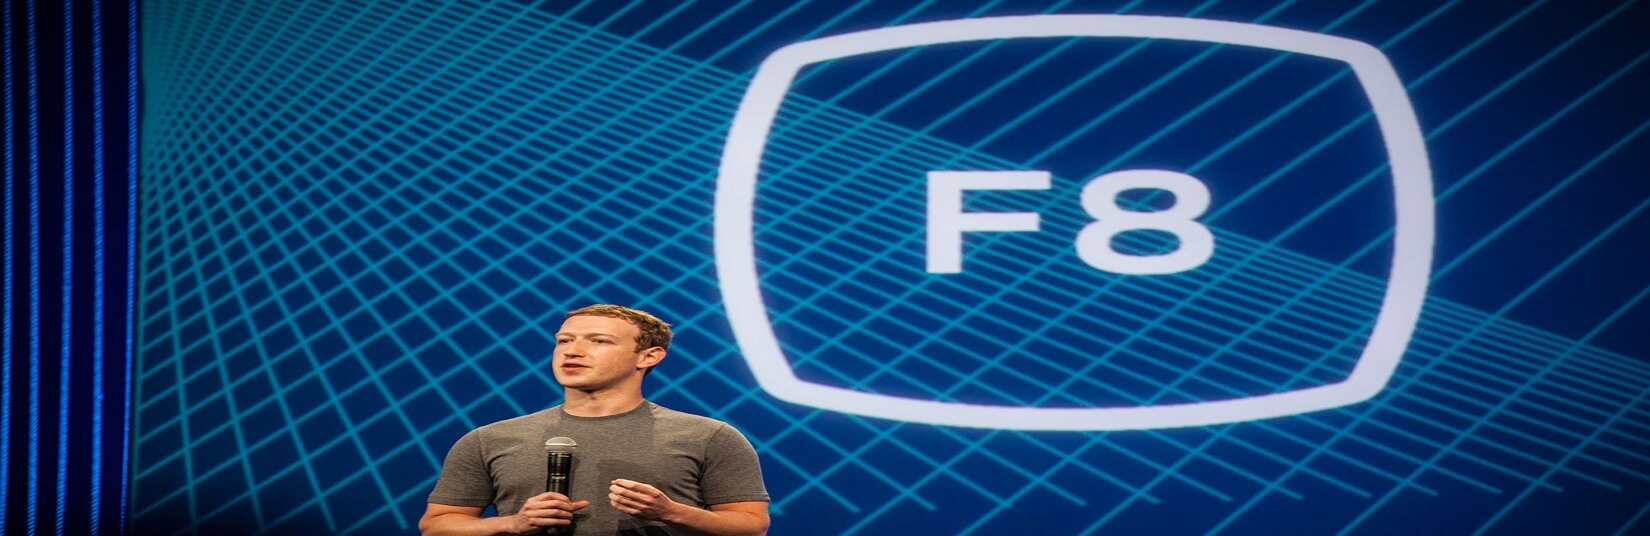 Here's What Facebook Announced at Their F8 Conference!